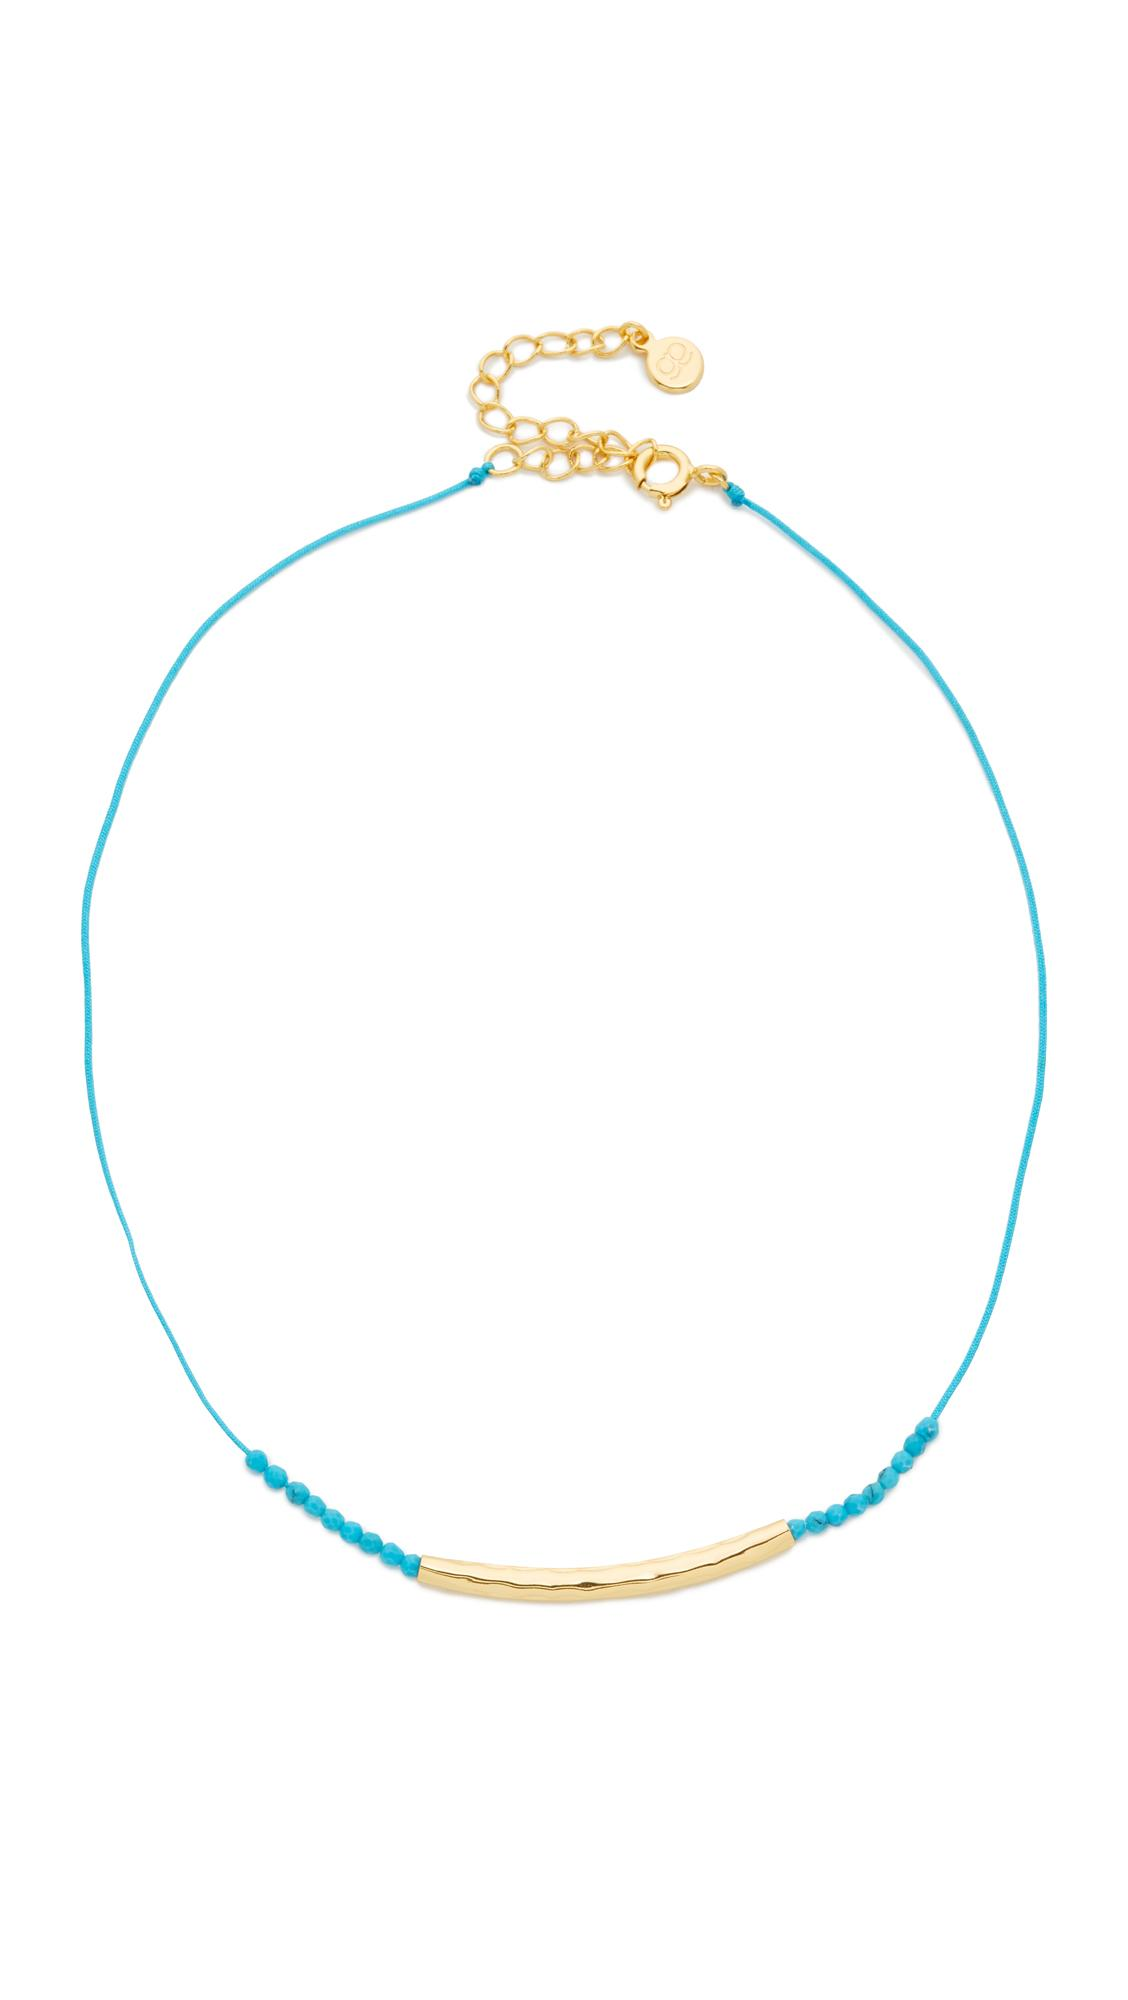 Gorjana Power Gemstone Choker Necklace in Metallic